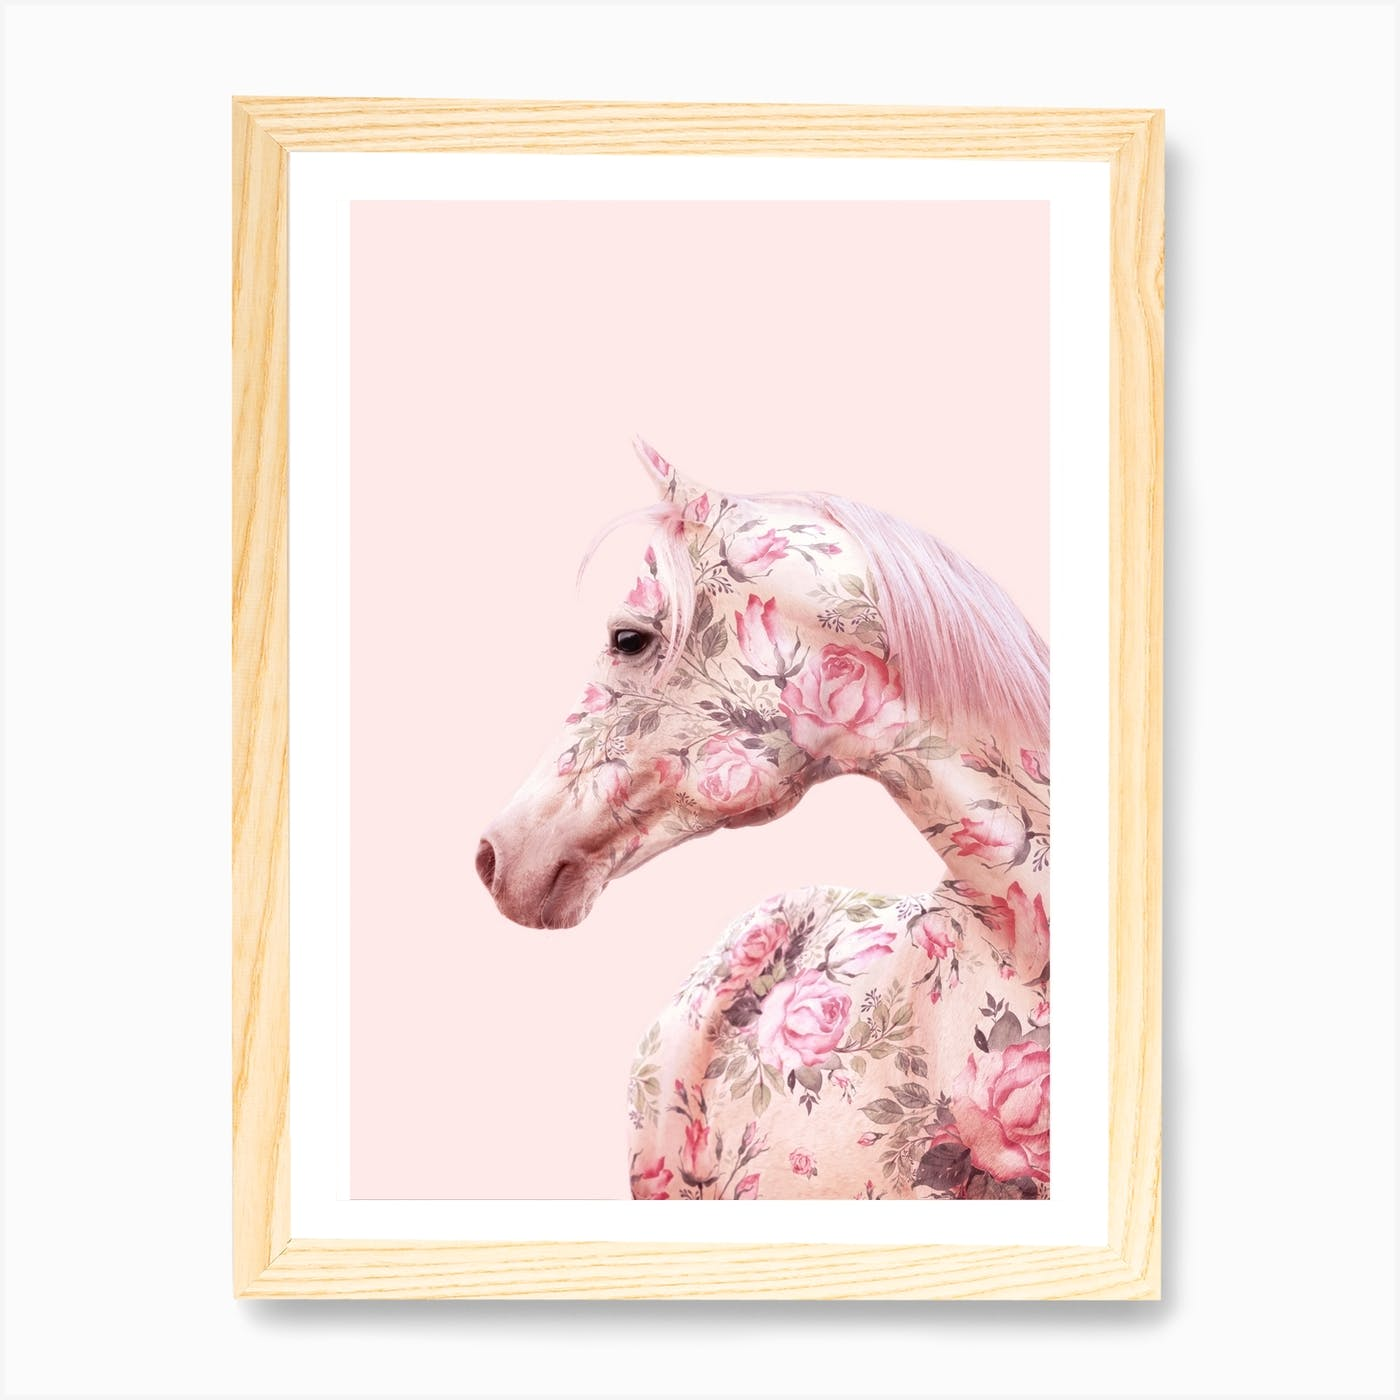 Floral Horse Art Print By Paul Fuentes Design Fy